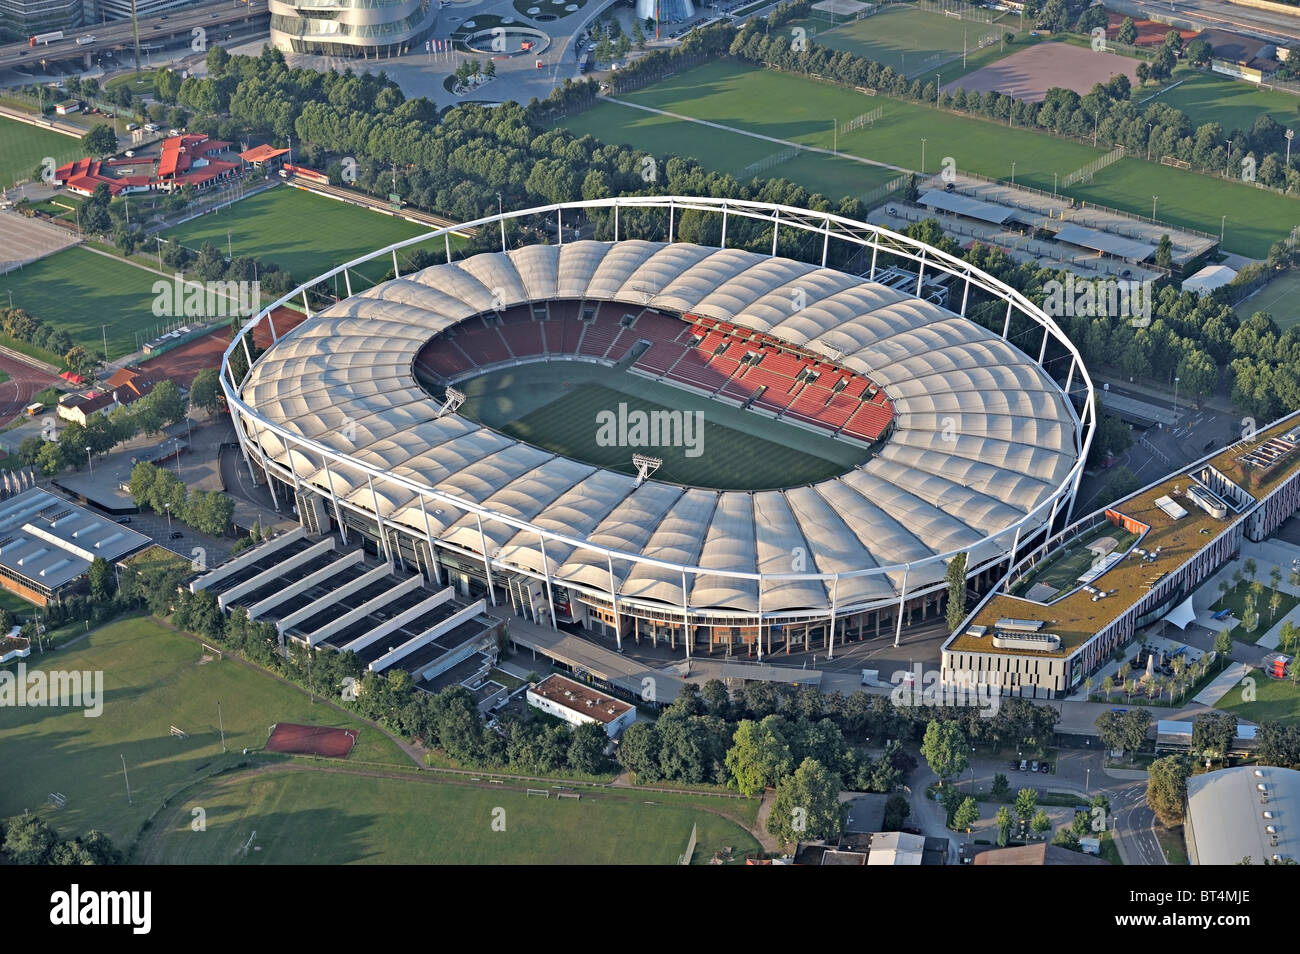 Mercedes benz arena soccer stadium stuttgar stock photo for Hotels near mercedes benz stadium